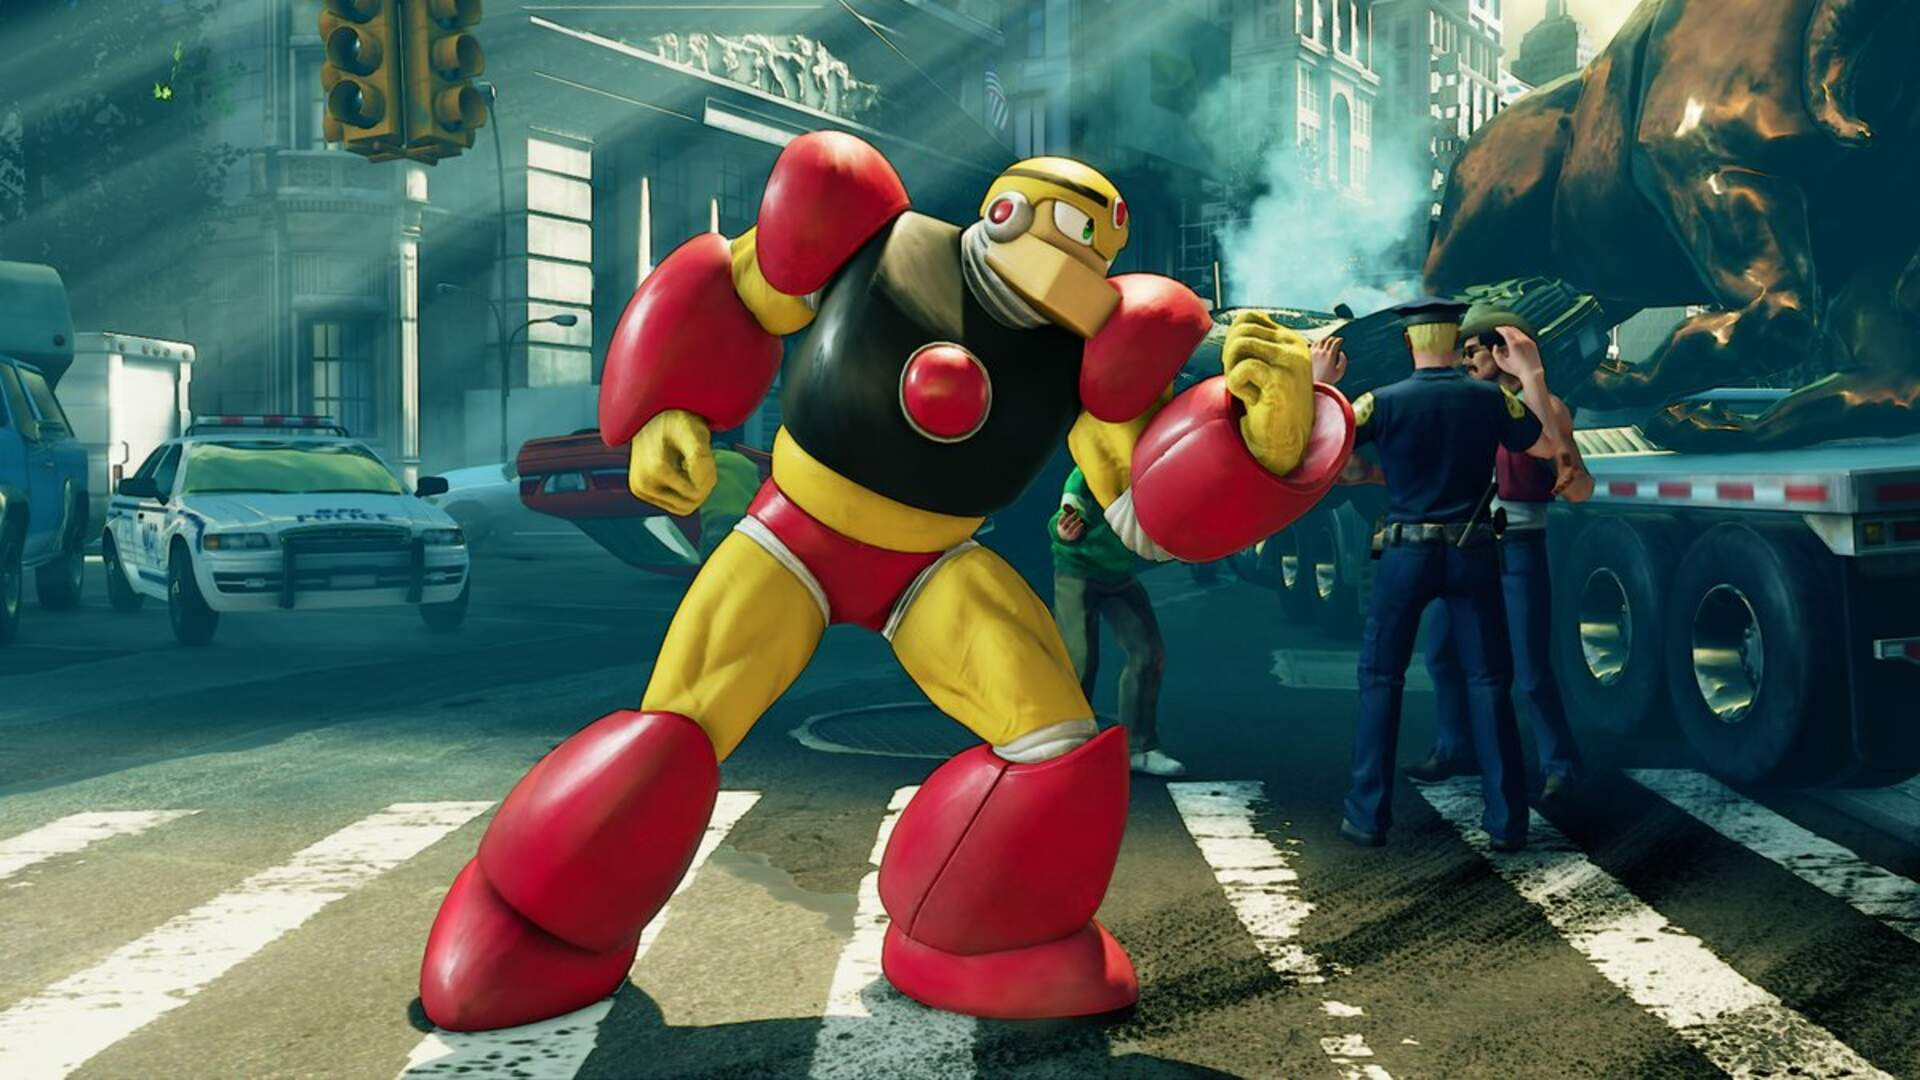 Guts Man Is Coming to Street Fighter 5, and He's Bringing His Whole Ass